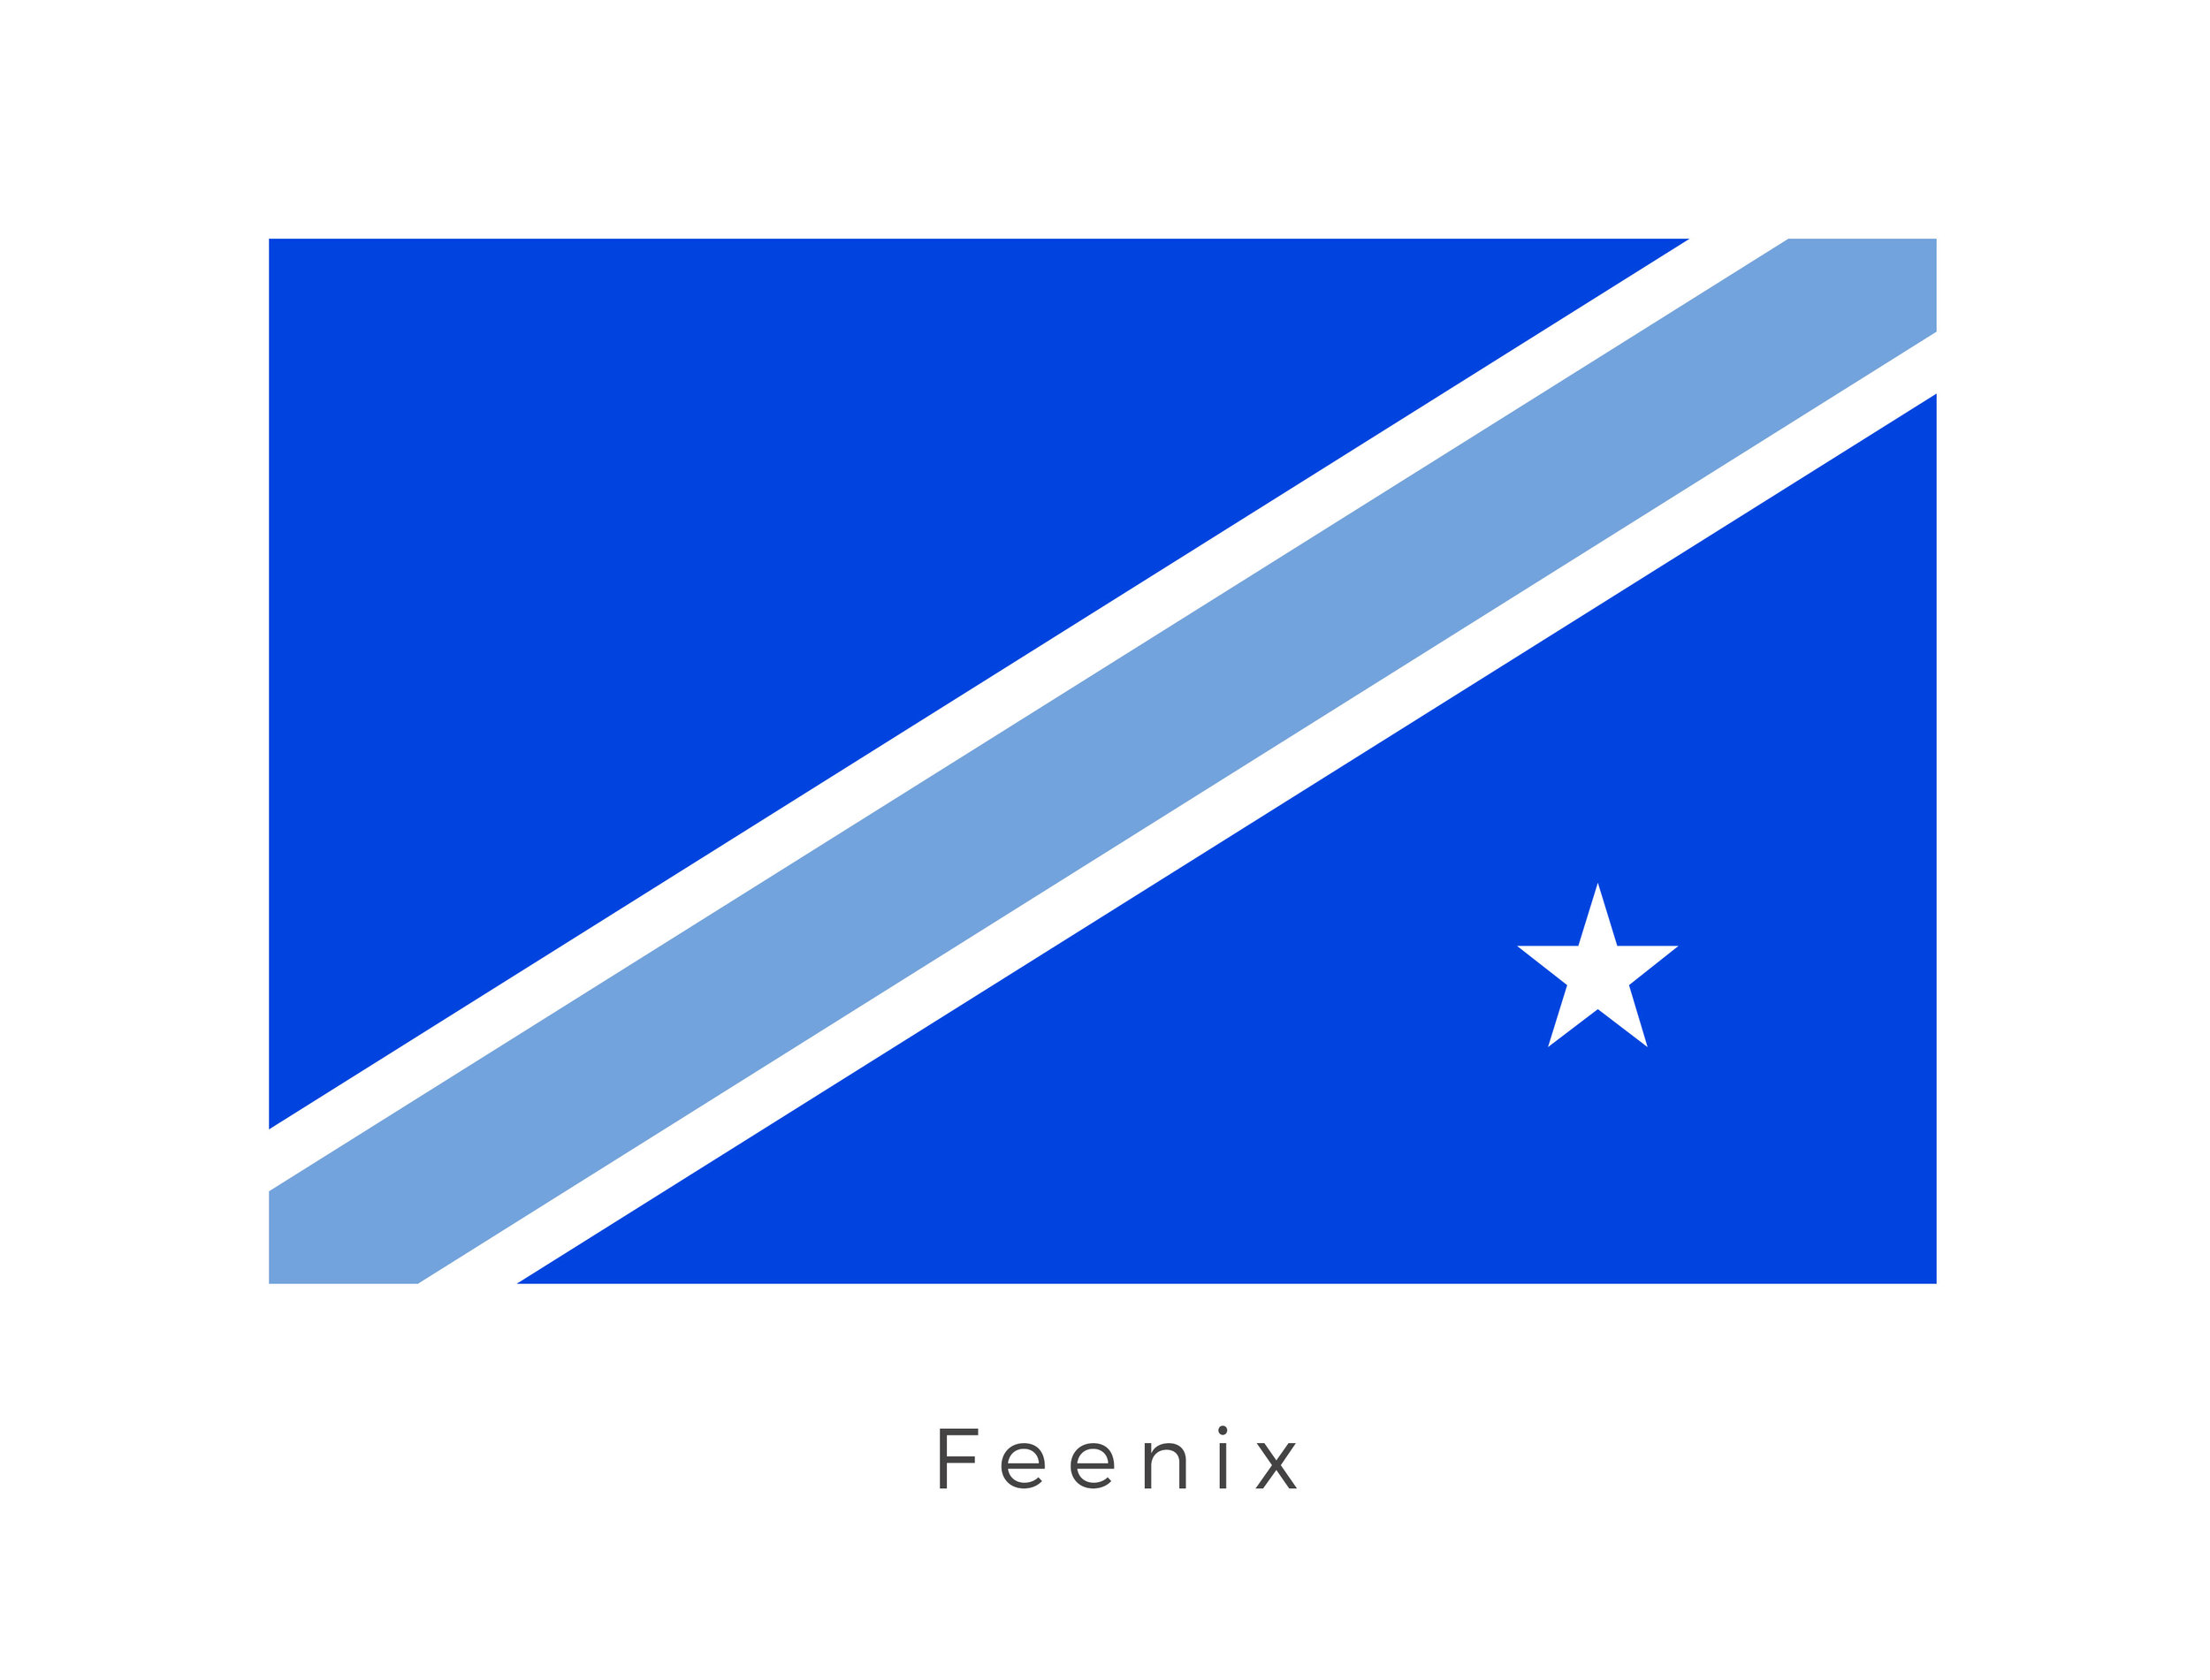 Feenix  was a planet in the Mid Rim's D'Aelgoth sector. It was a member of the Galactic Republic and later the Galactic Empire. The deep blue on the flag is that of the Galactic Republic while the band and star signifies the planets relationship within the D'Aelgoth sector.